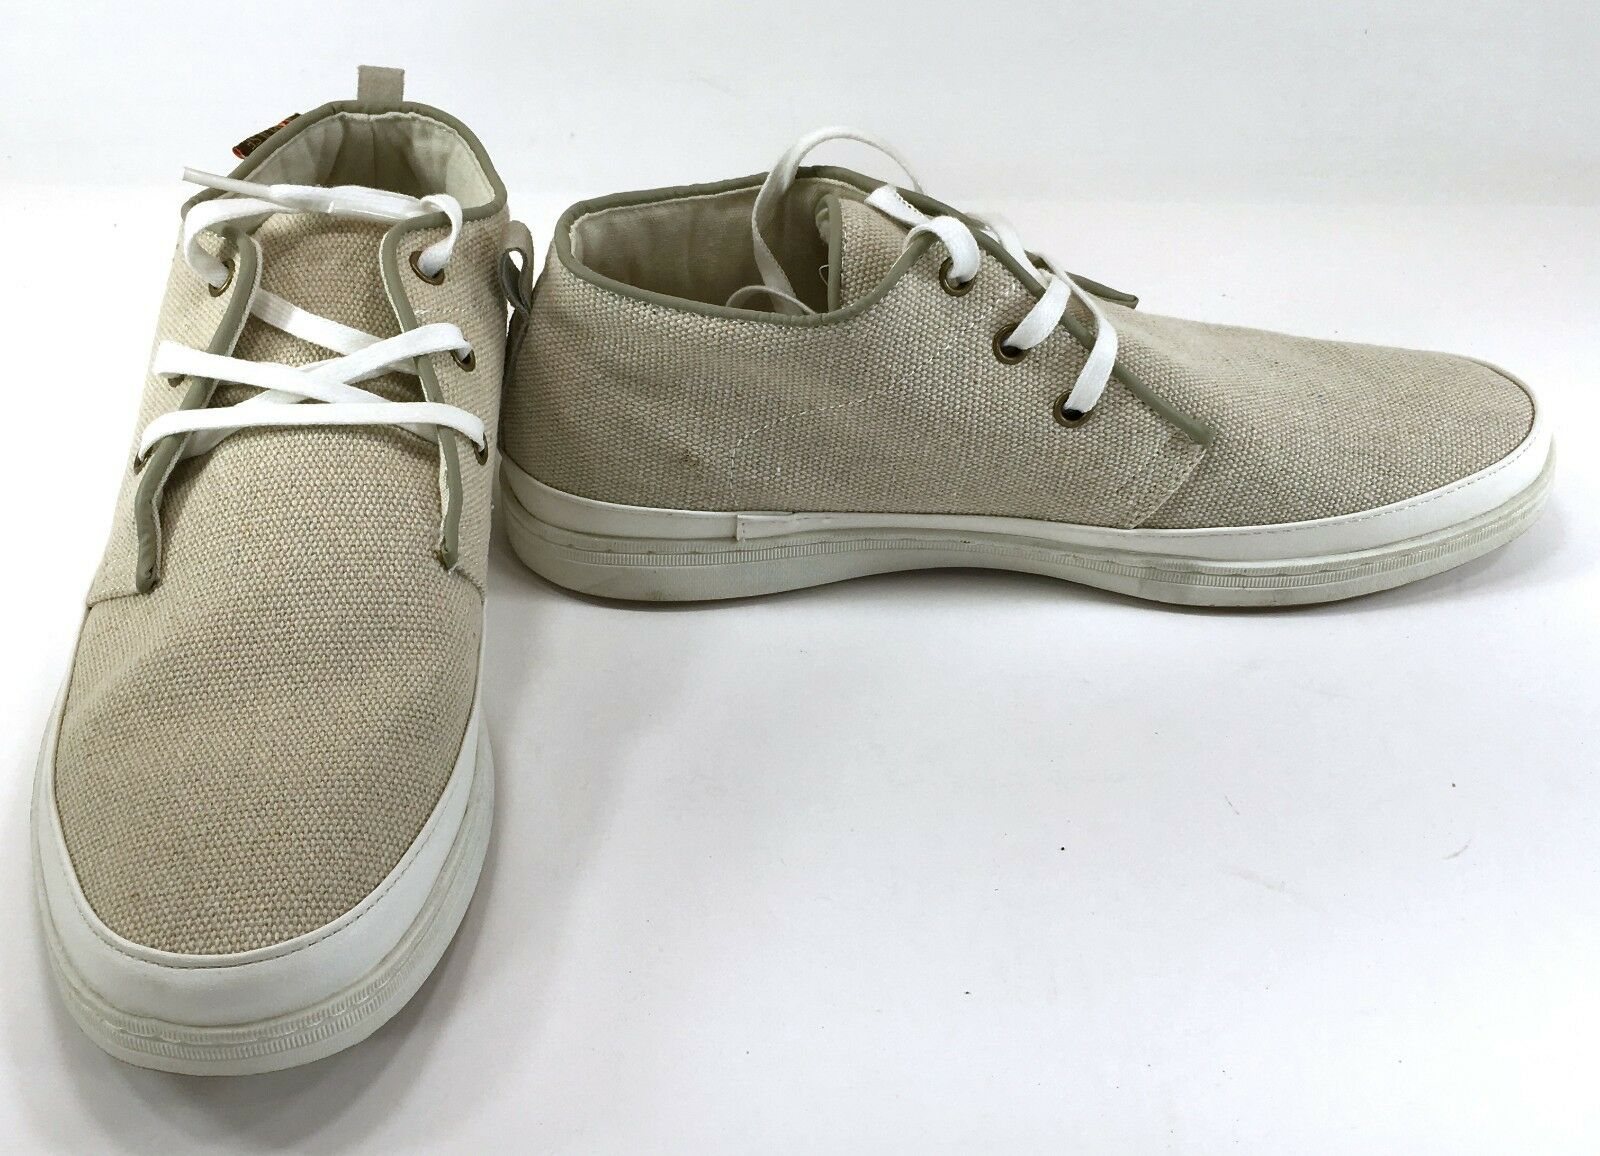 Impulse by Steeple Gate shoes Canvas Lo Athletic Tan Brown Sneakers Size 8.5